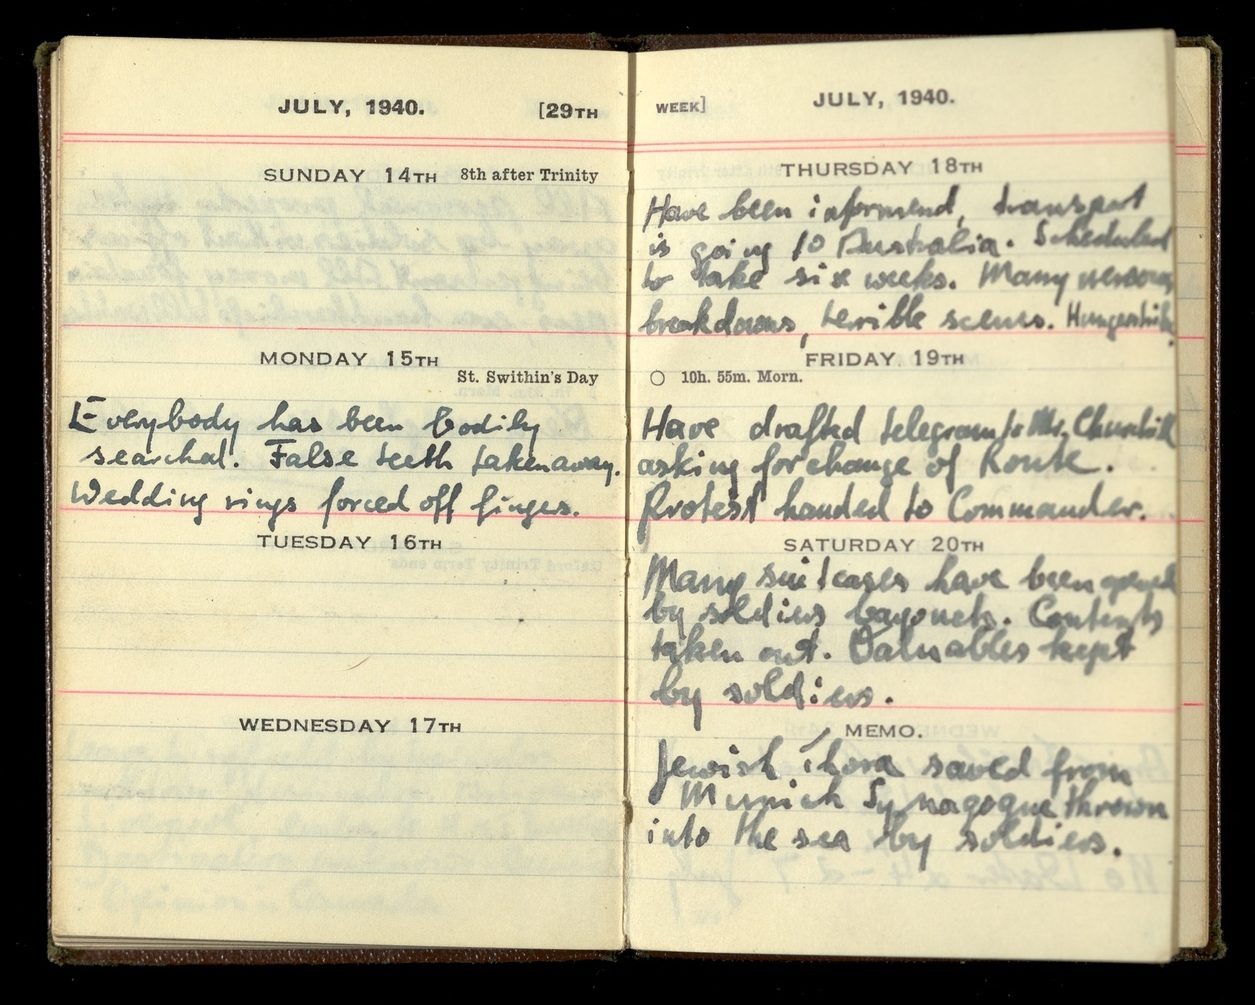 Diary open to July 1940 containing handwritten entries